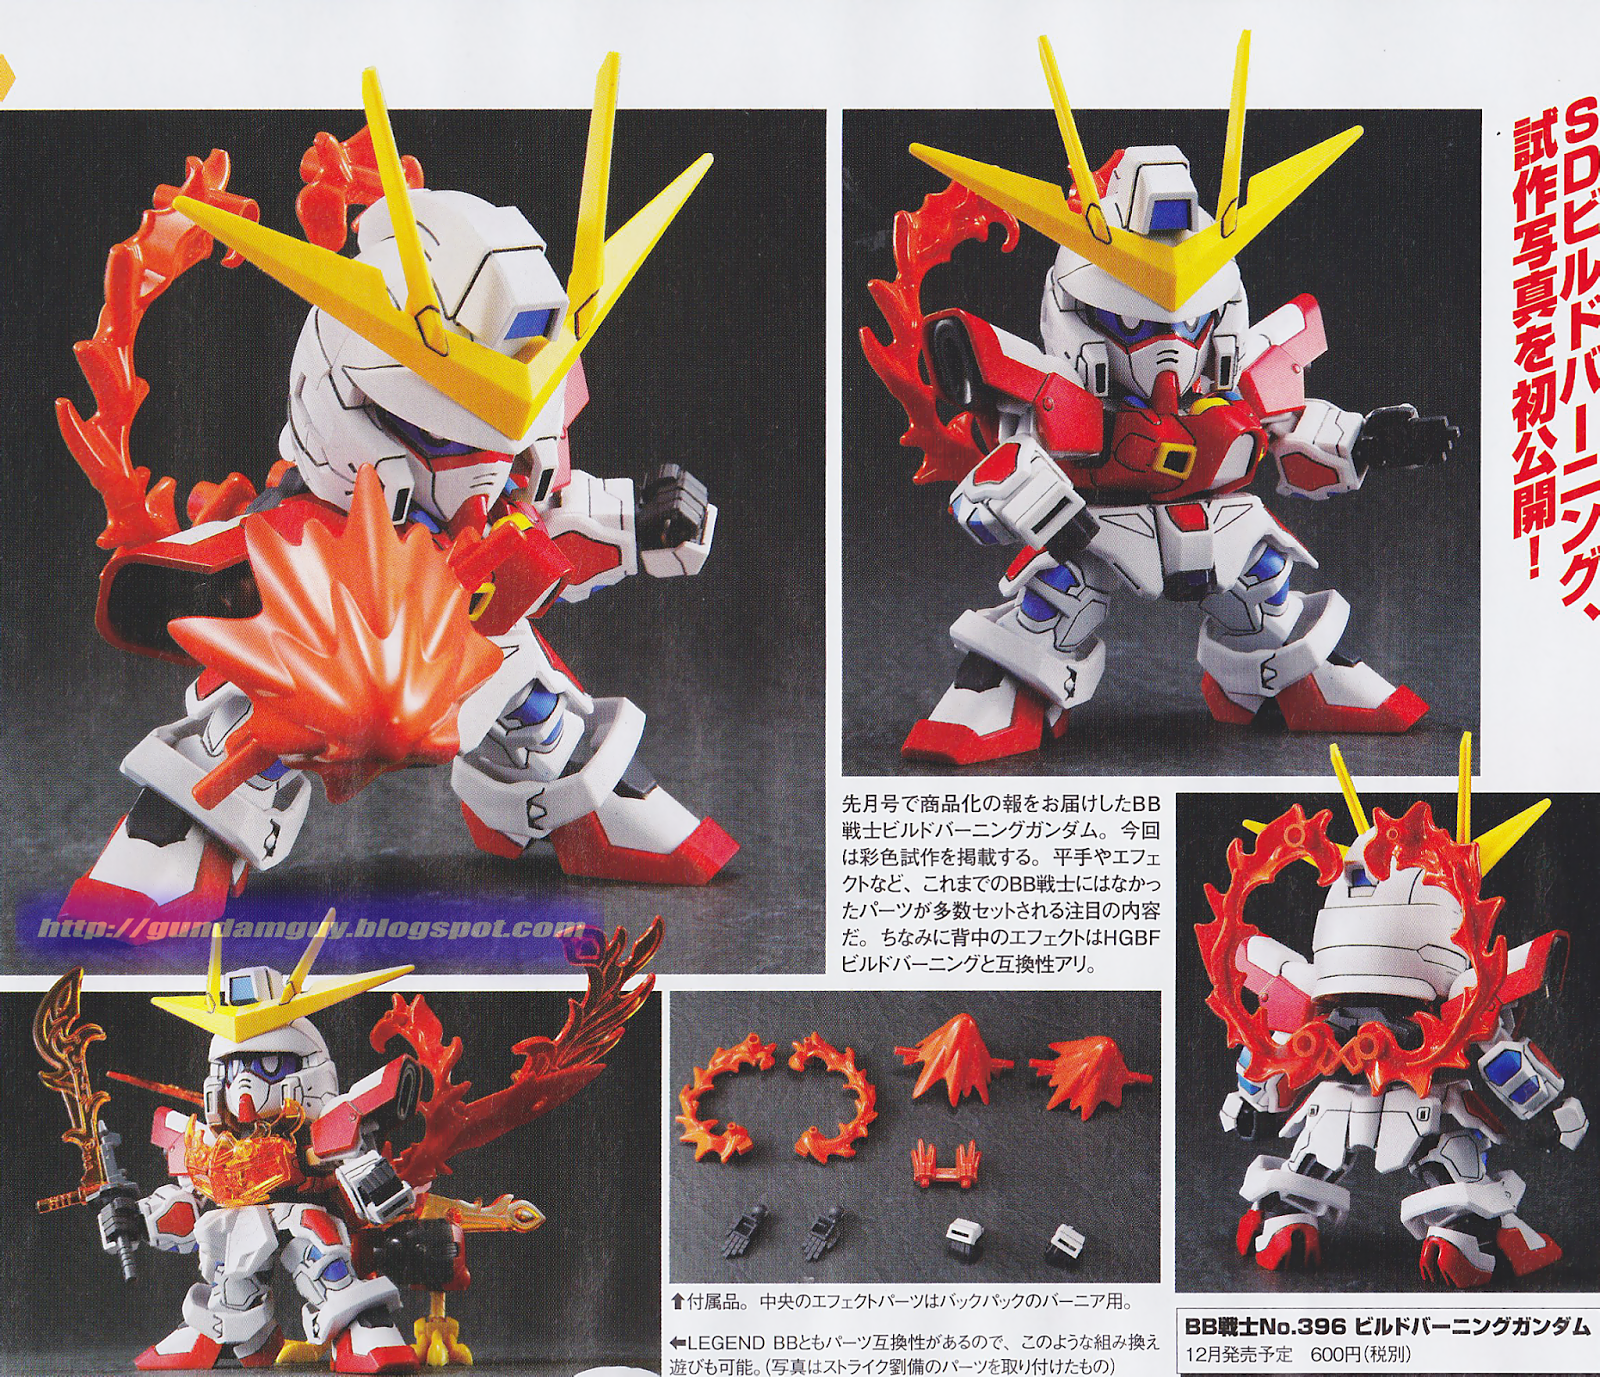 SD BB Senshii Build Burning Gundam